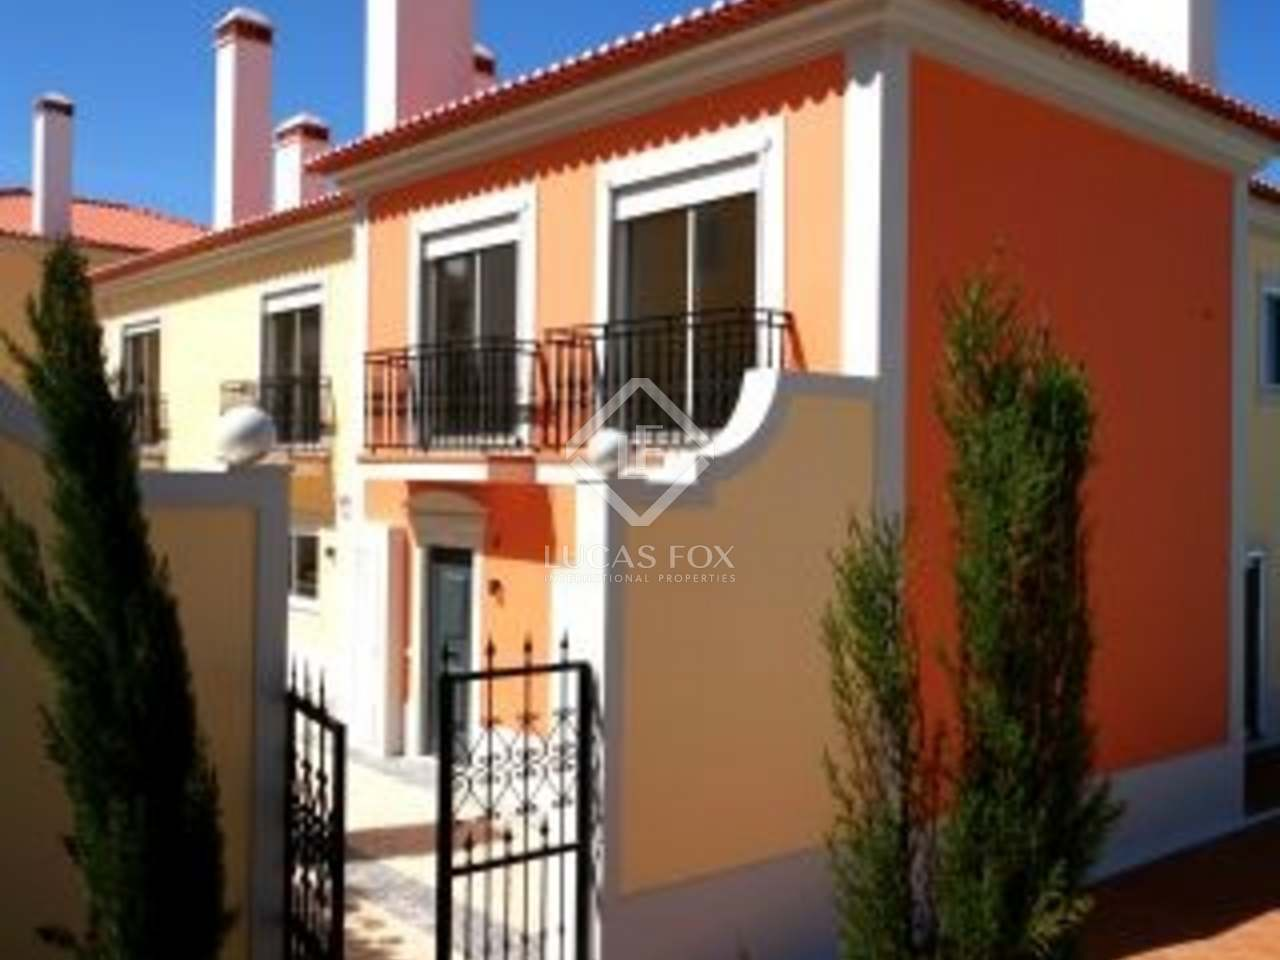 Fabulous 3 bedroom townhouse for sale with sea views and golf course. Silver Coast : 1